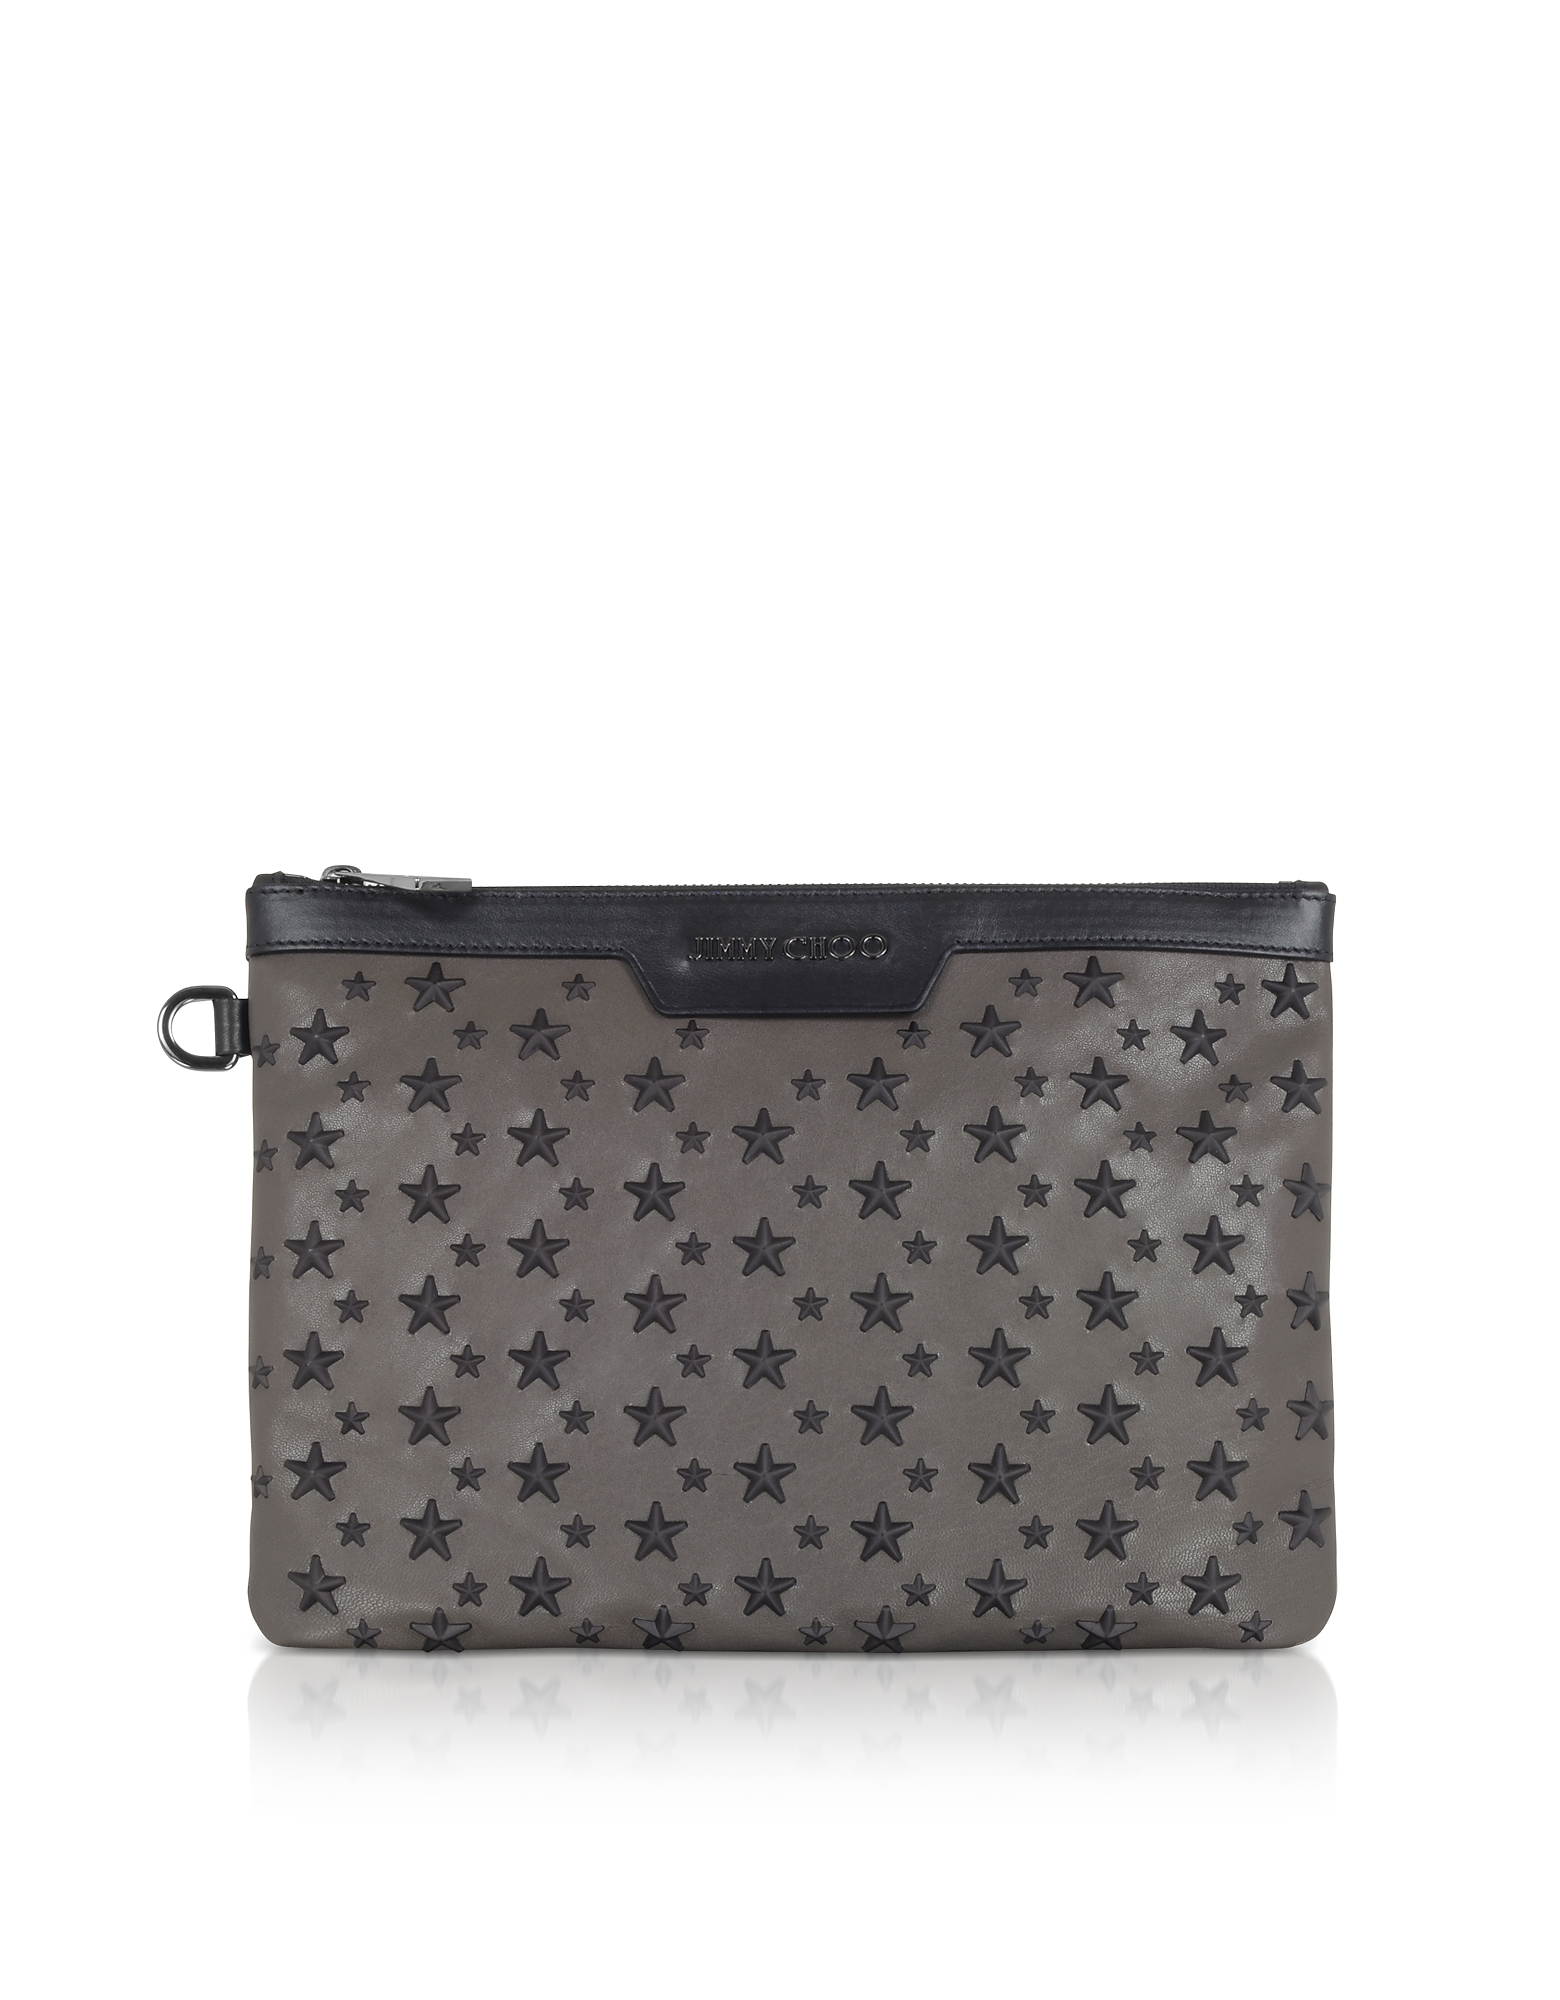 SMOKE/BLACK DEREK/S SMALL CLUTCH W/STARS